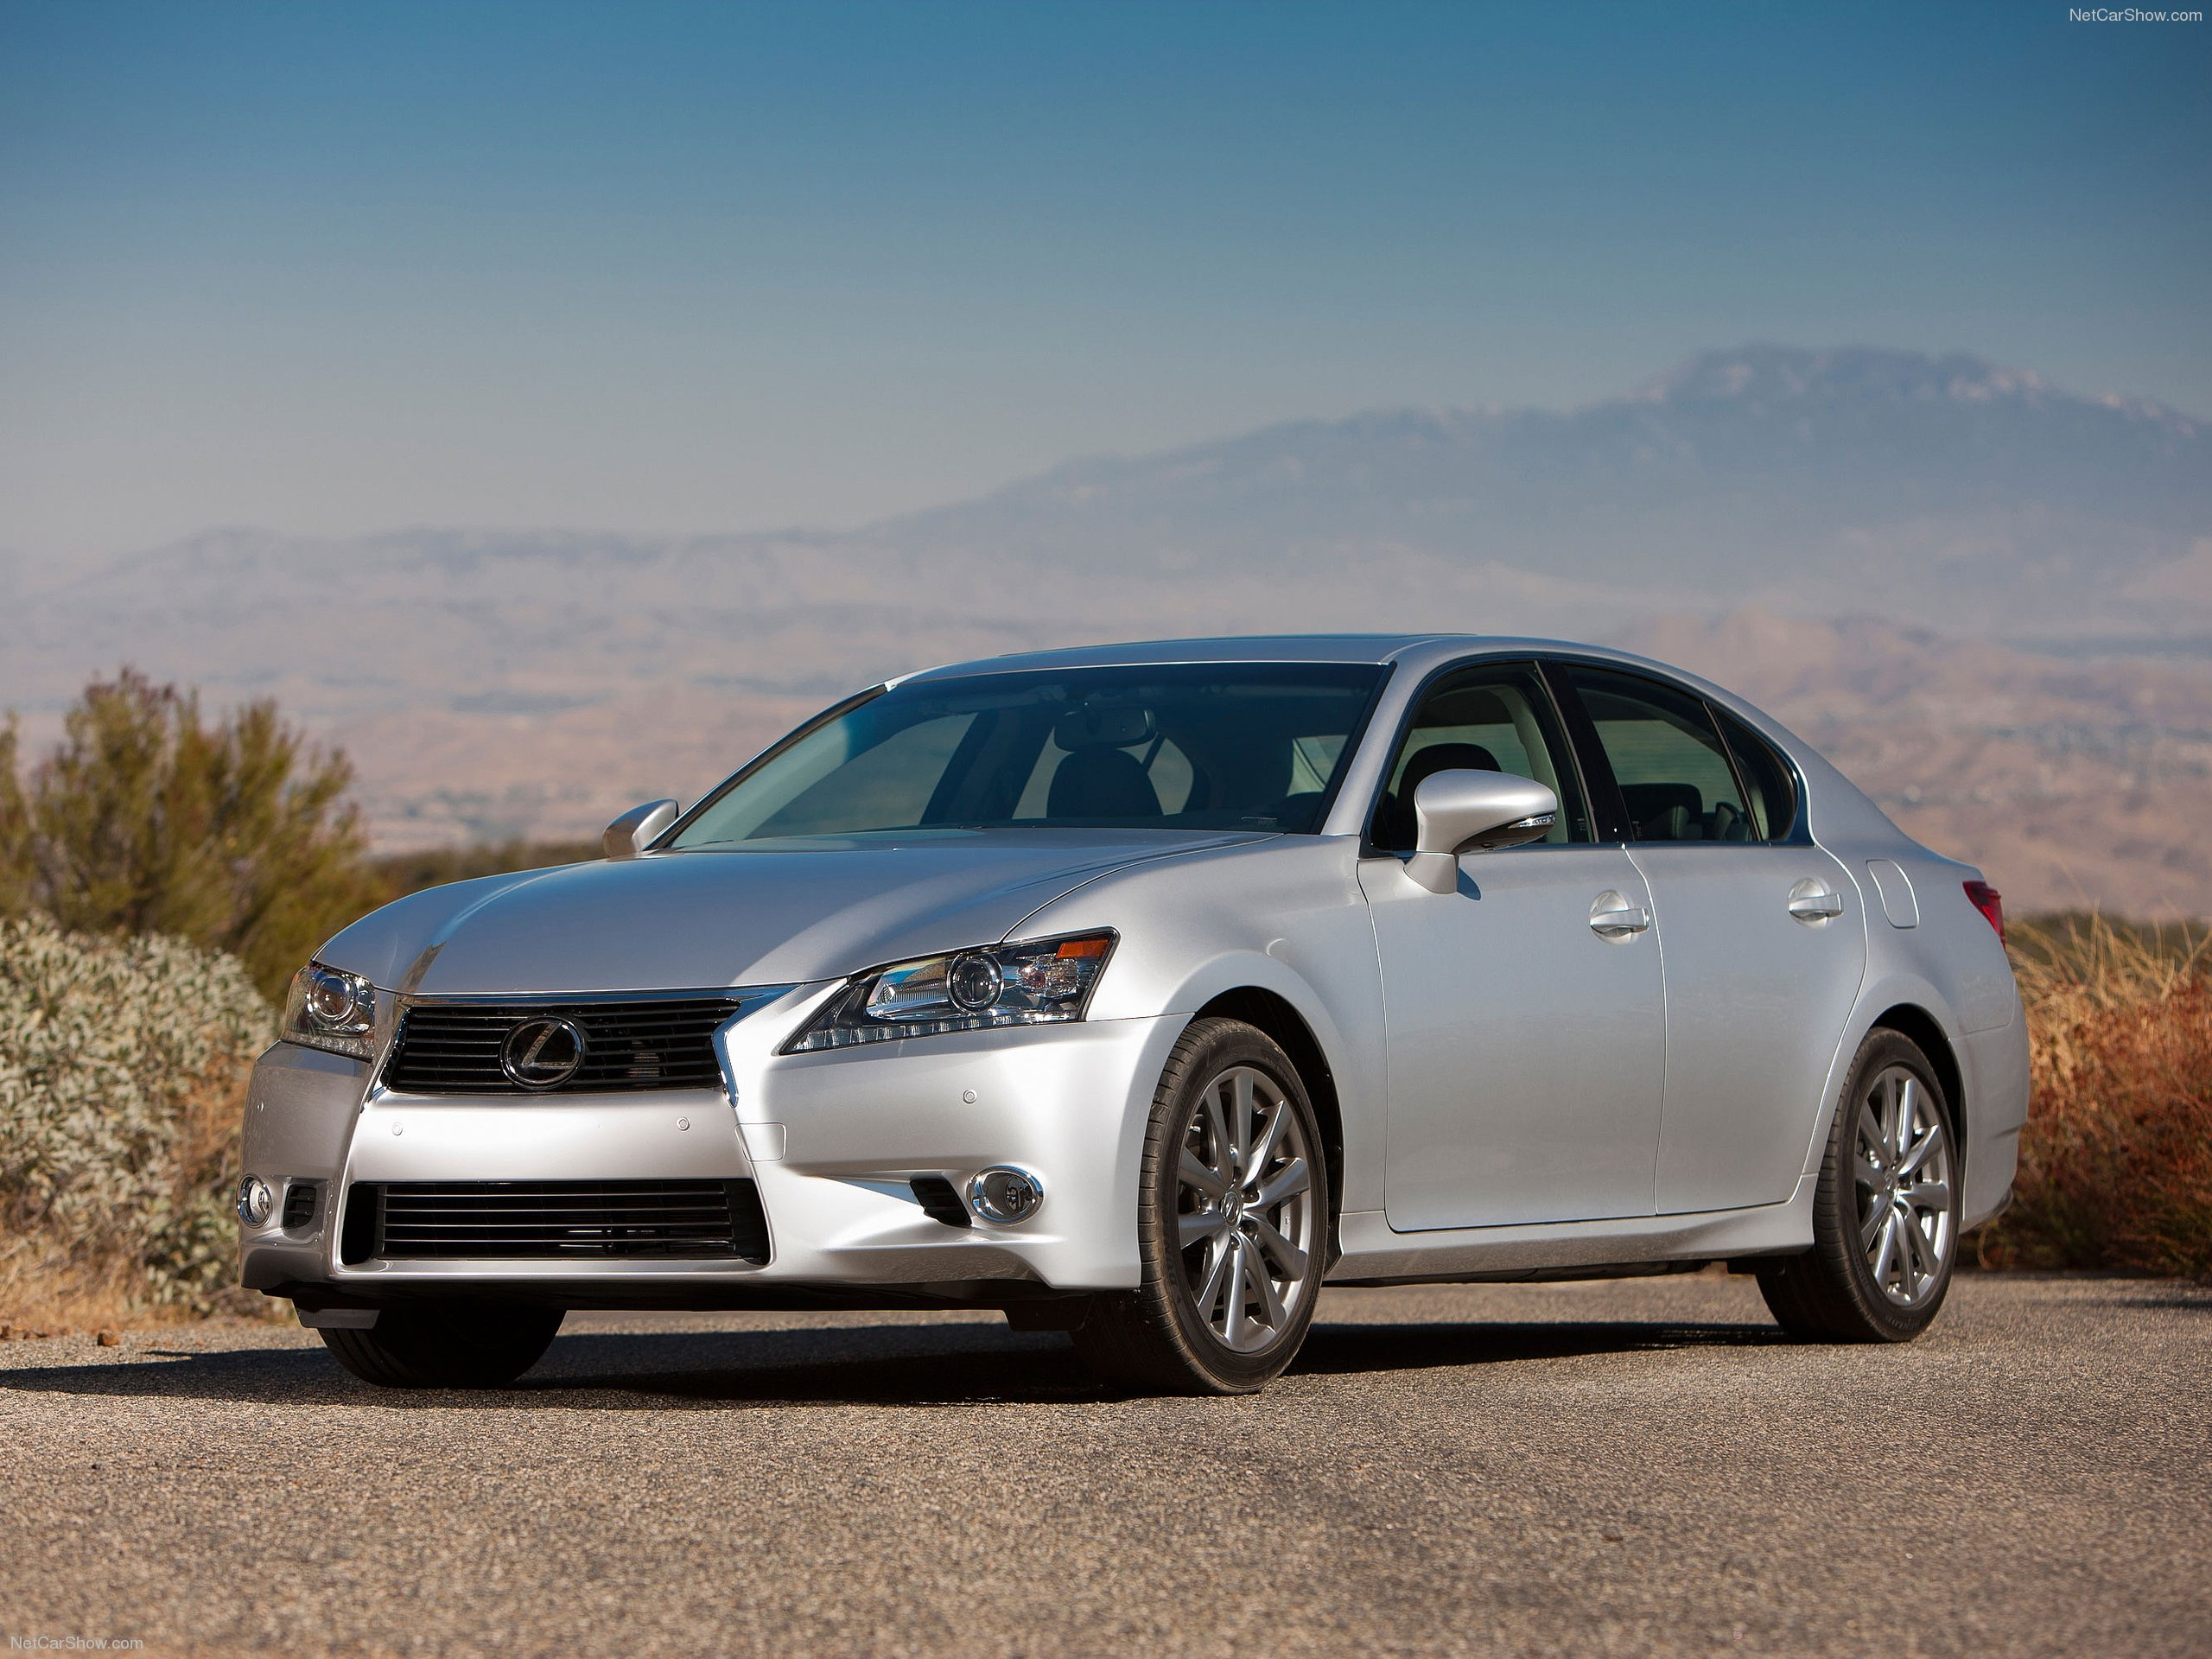 2013 lexus is 350 - image #13